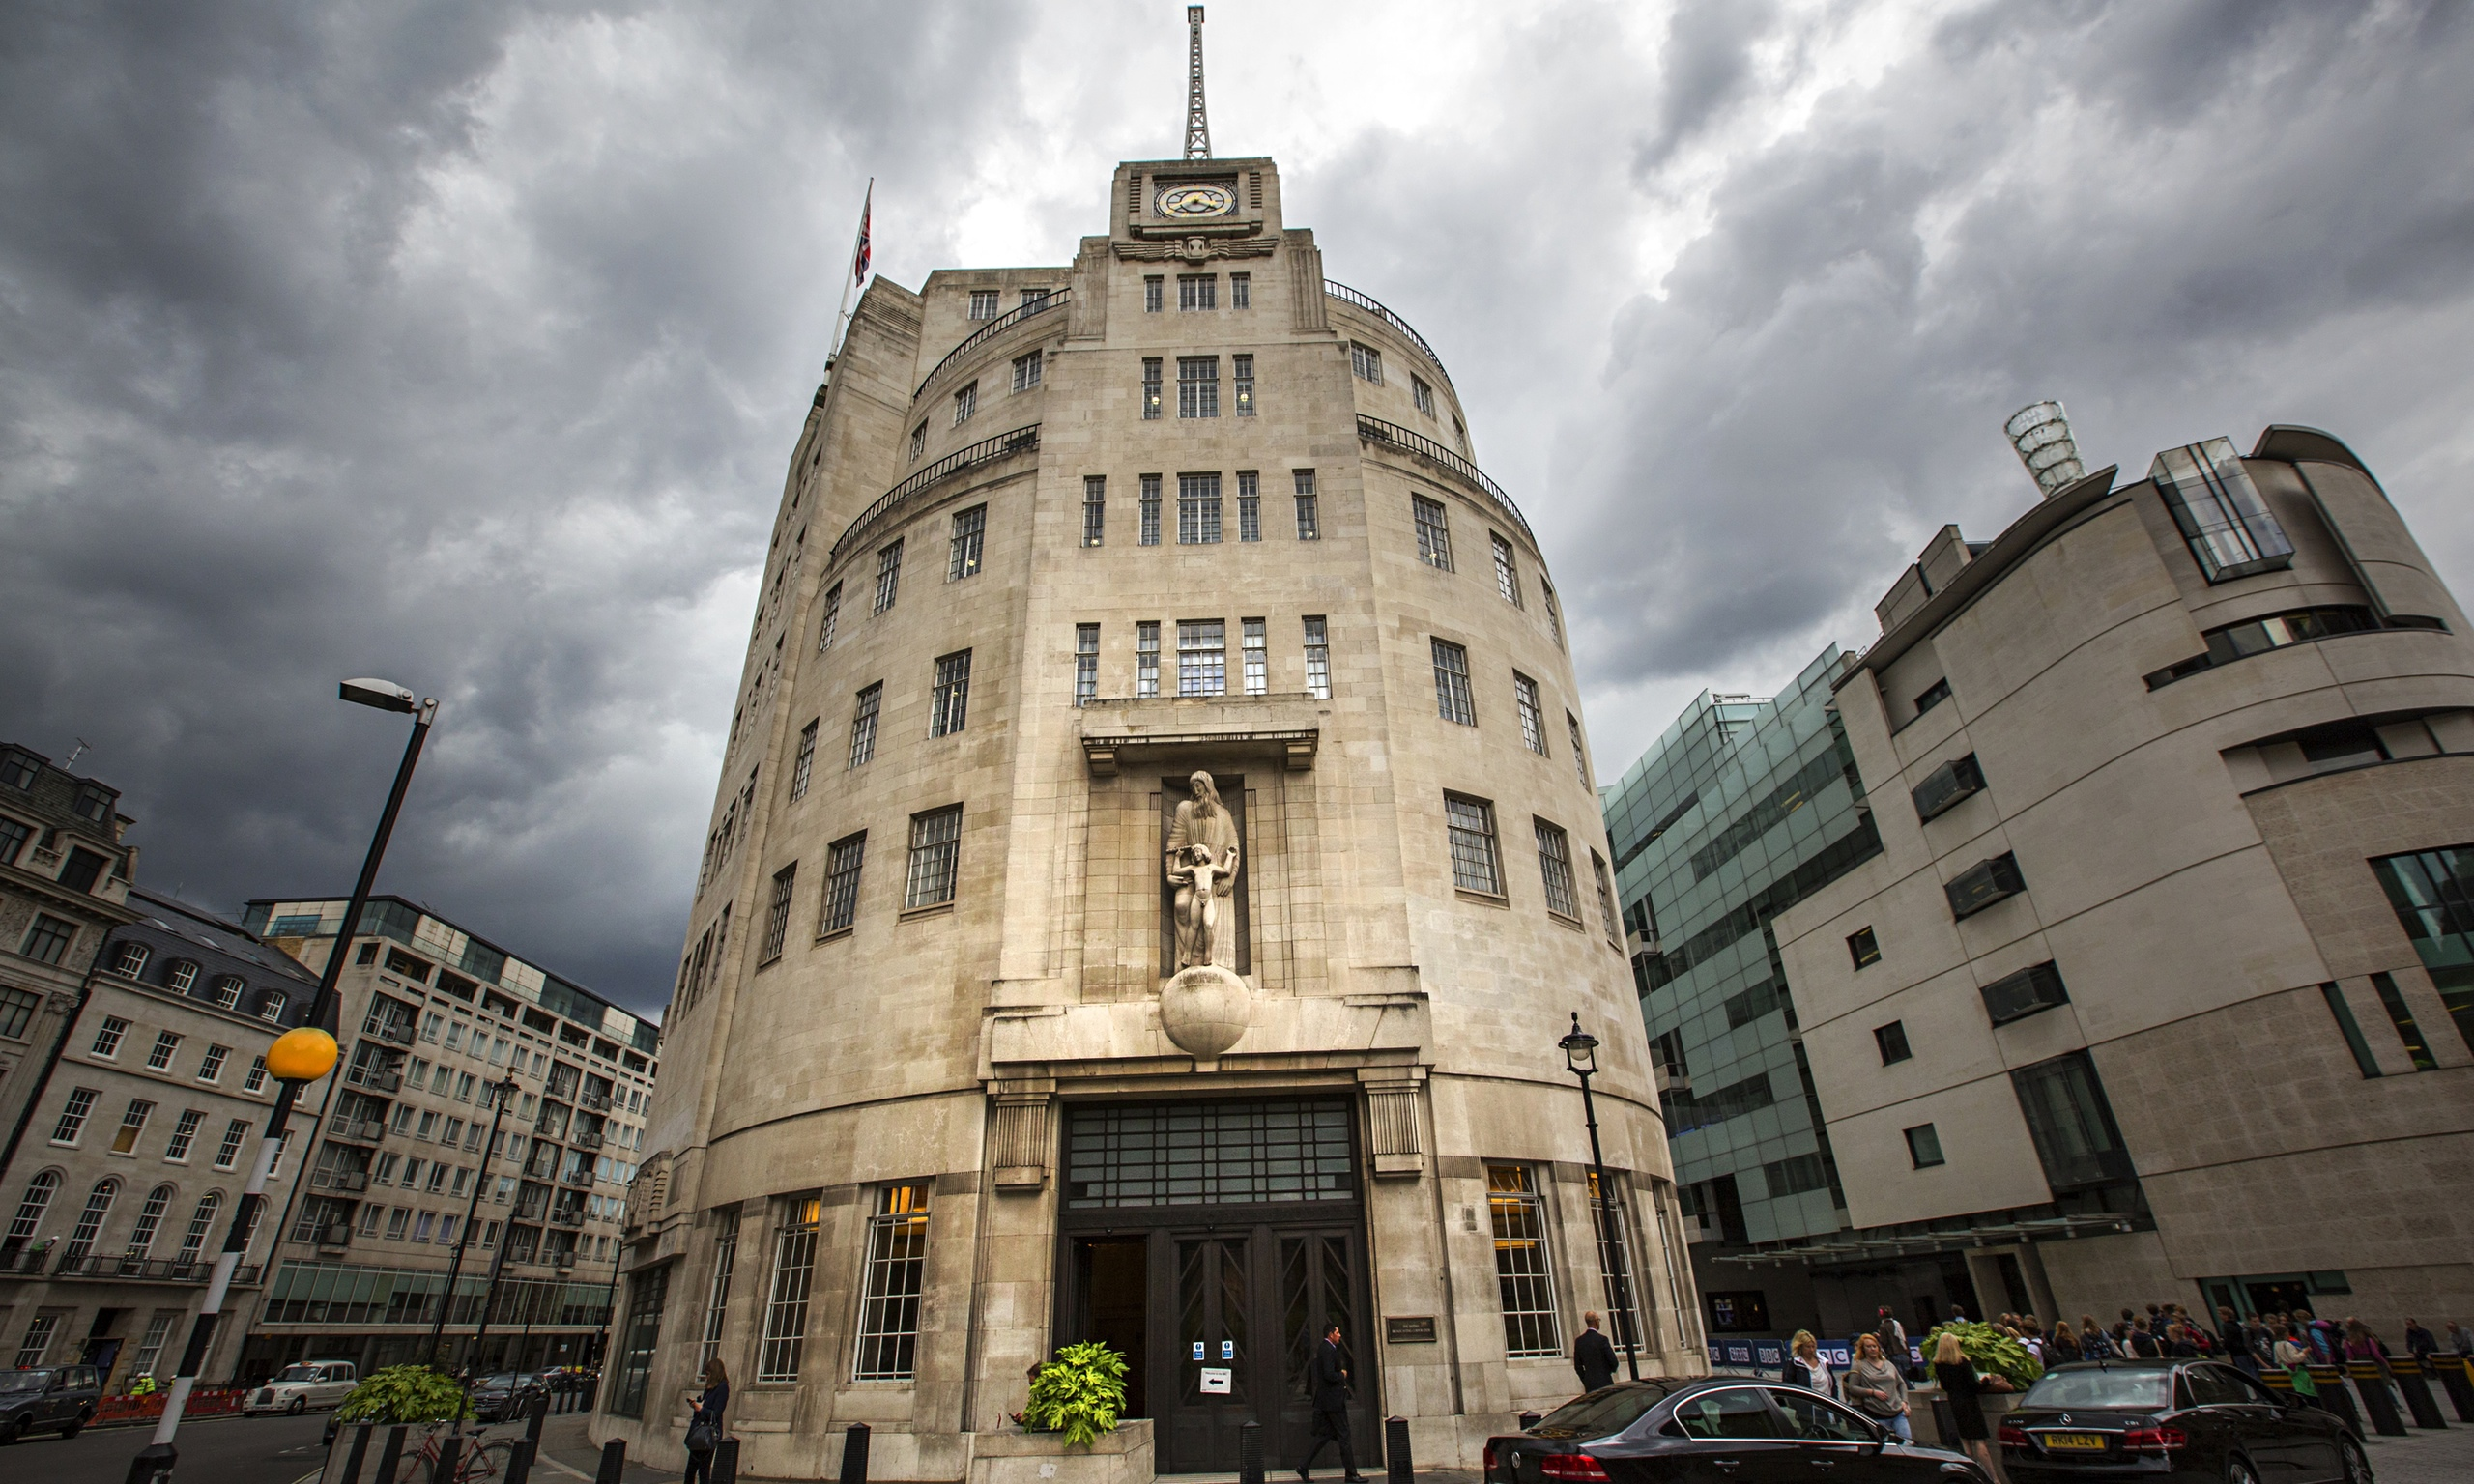 https://i0.wp.com/static.guim.co.uk/sys-images/Media/Pix/pictures/2014/8/23/1408792562140/The-BBC-Trust-chairman-sh-014.jpg